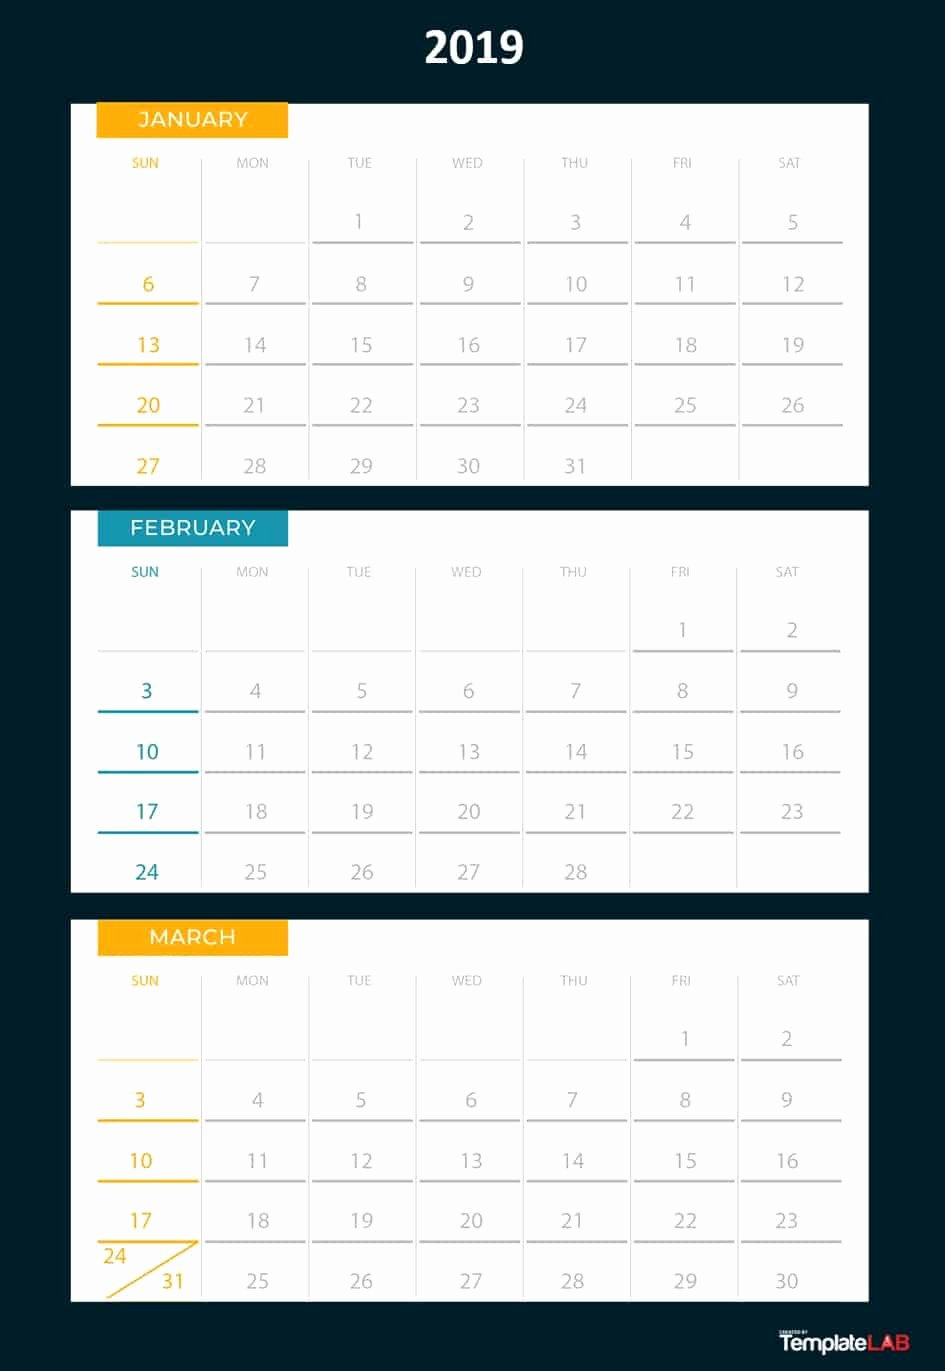 Blank Calendar Template 2019 Fresh 2019 Printable Calendars [monthly with Holidays Yearly